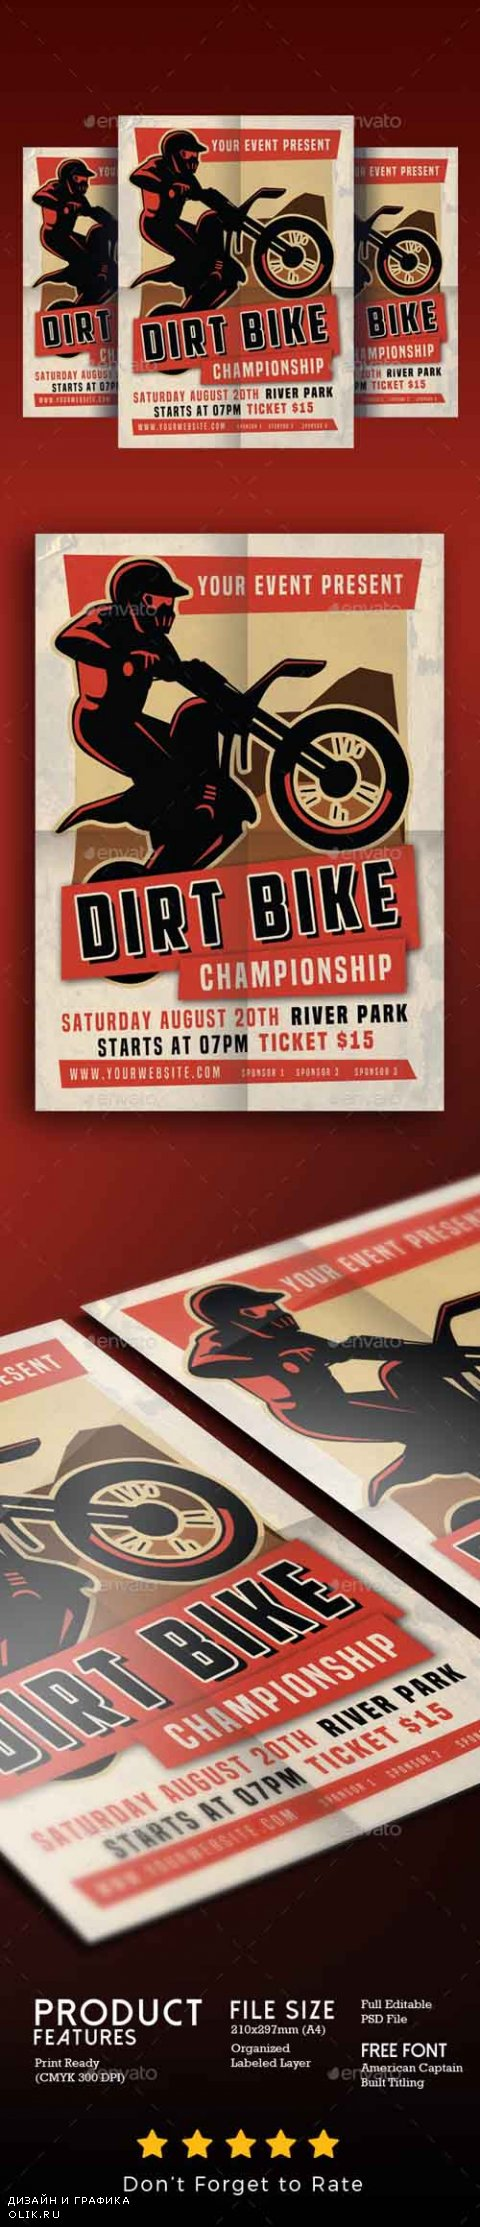 Dirt Bike Motorcross Championships Sports 17421981